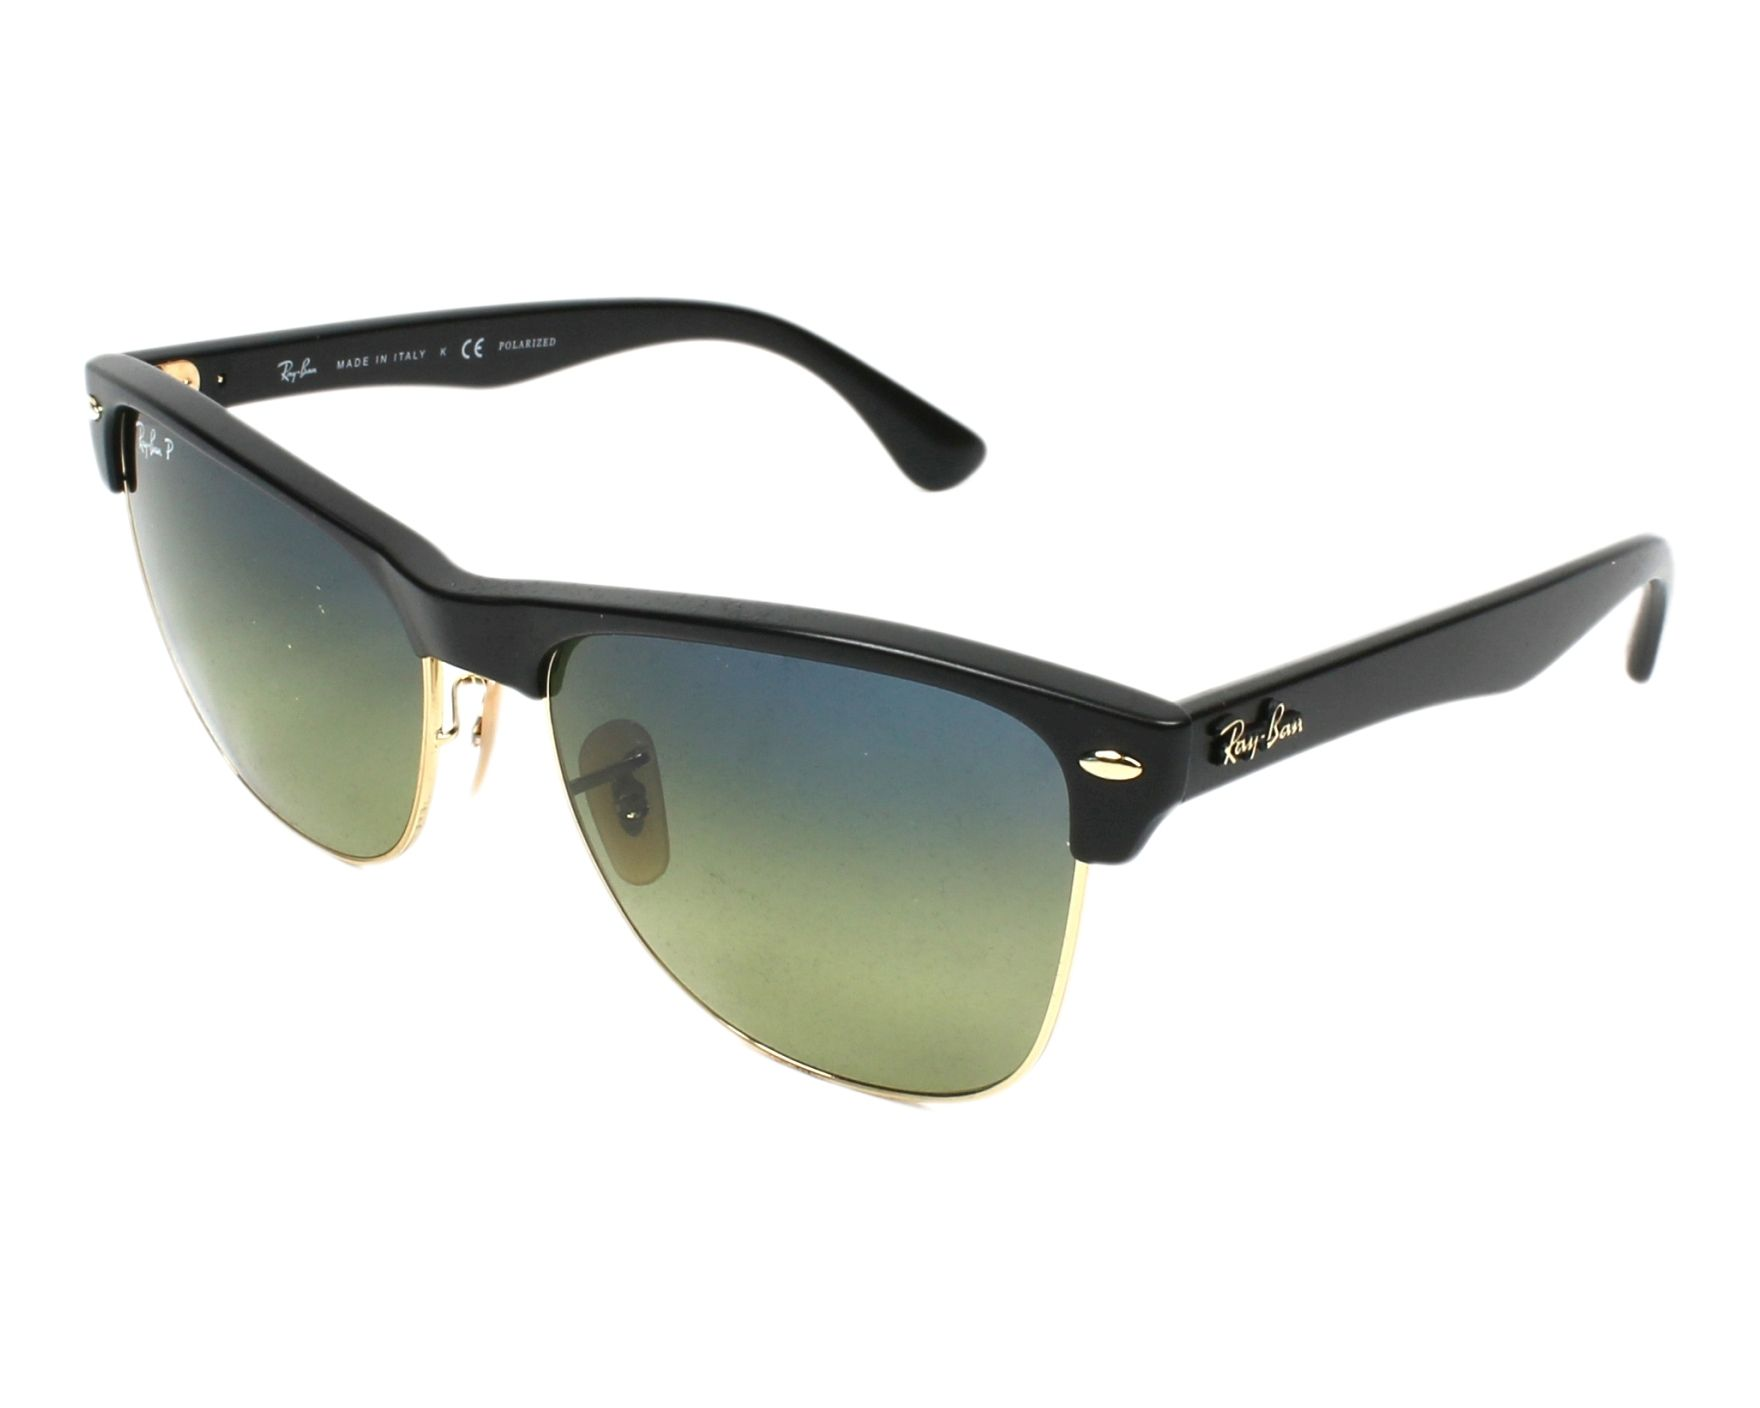 ... promo code for sunglasses ray ban rb 4175 877 76 57 15 black gold  profile 23fd7 421073b060